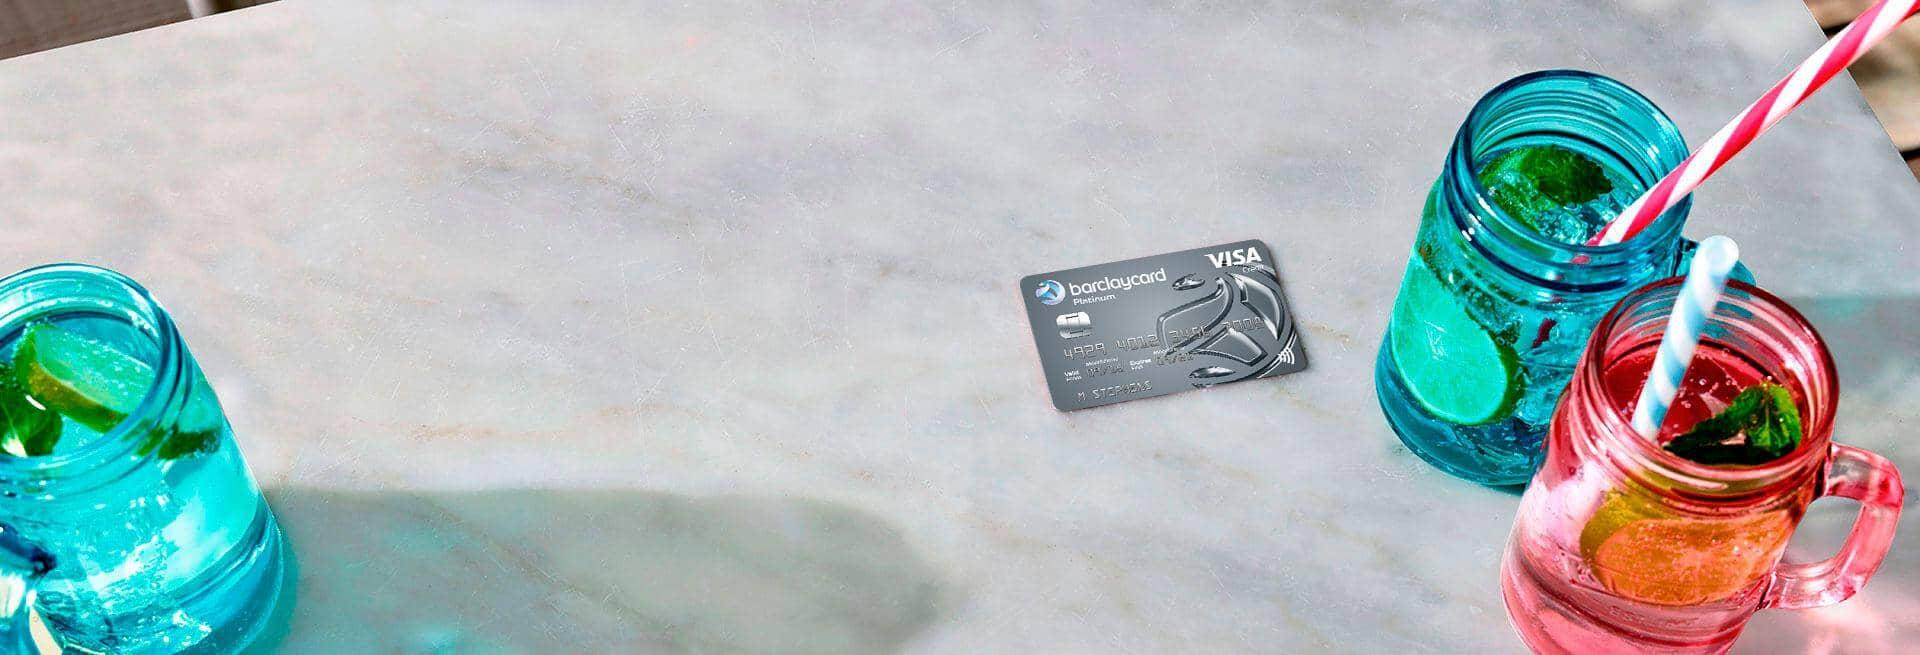 Barclaycard Platinum all-rounder